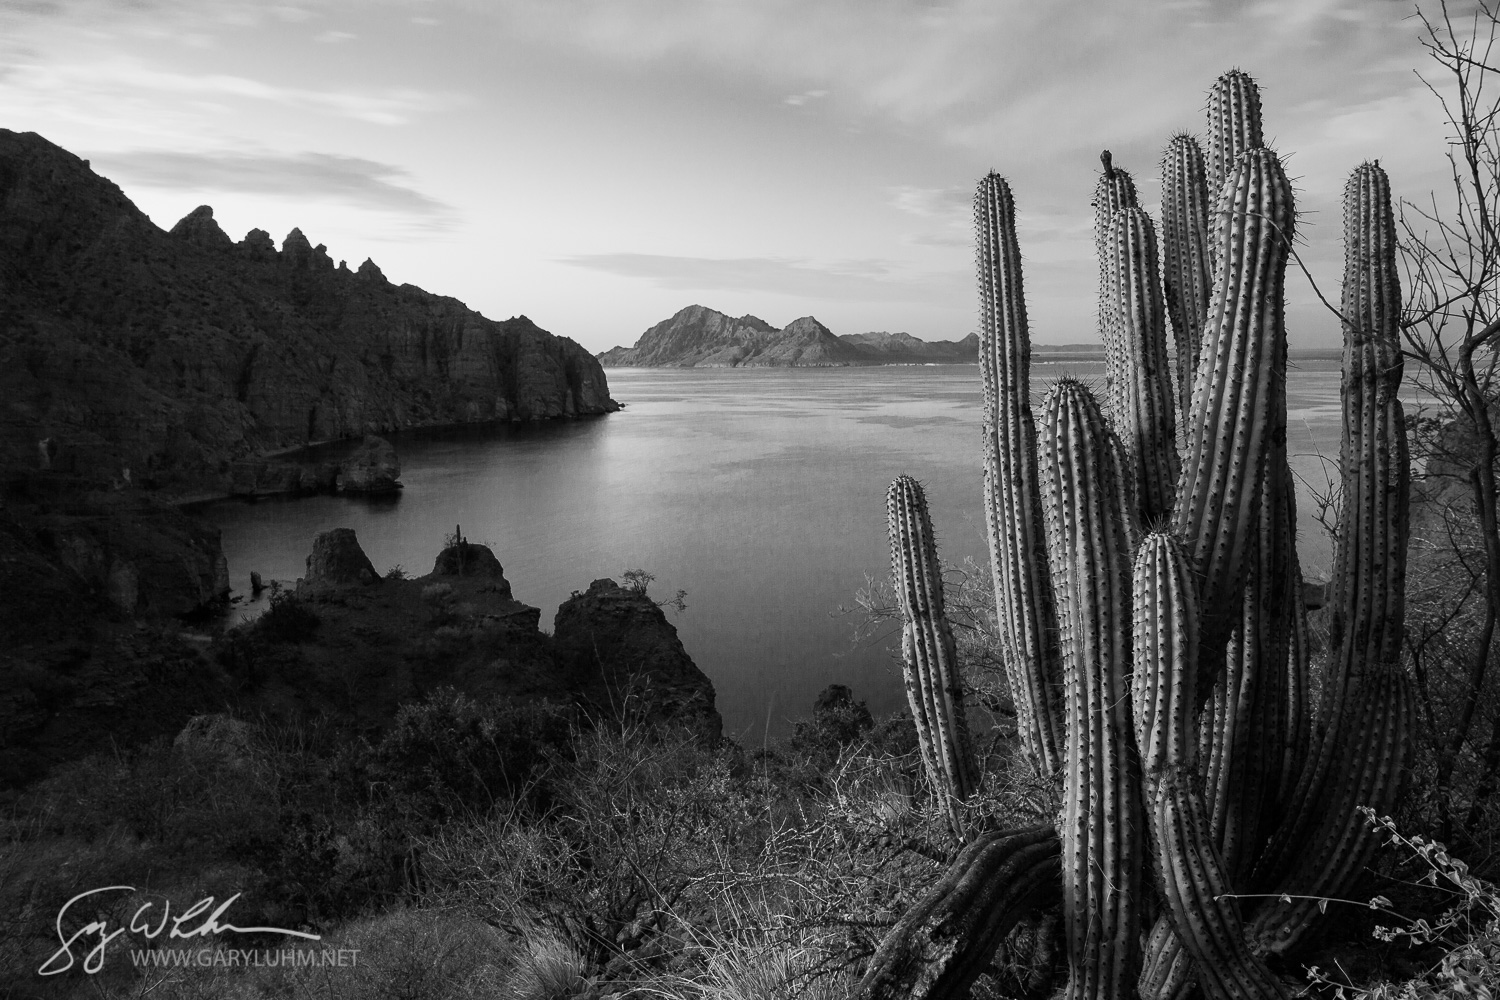 Organ Pipe Cactus and Isla Danzante at sunset, Sea of Cortez, Baja, Mexico.